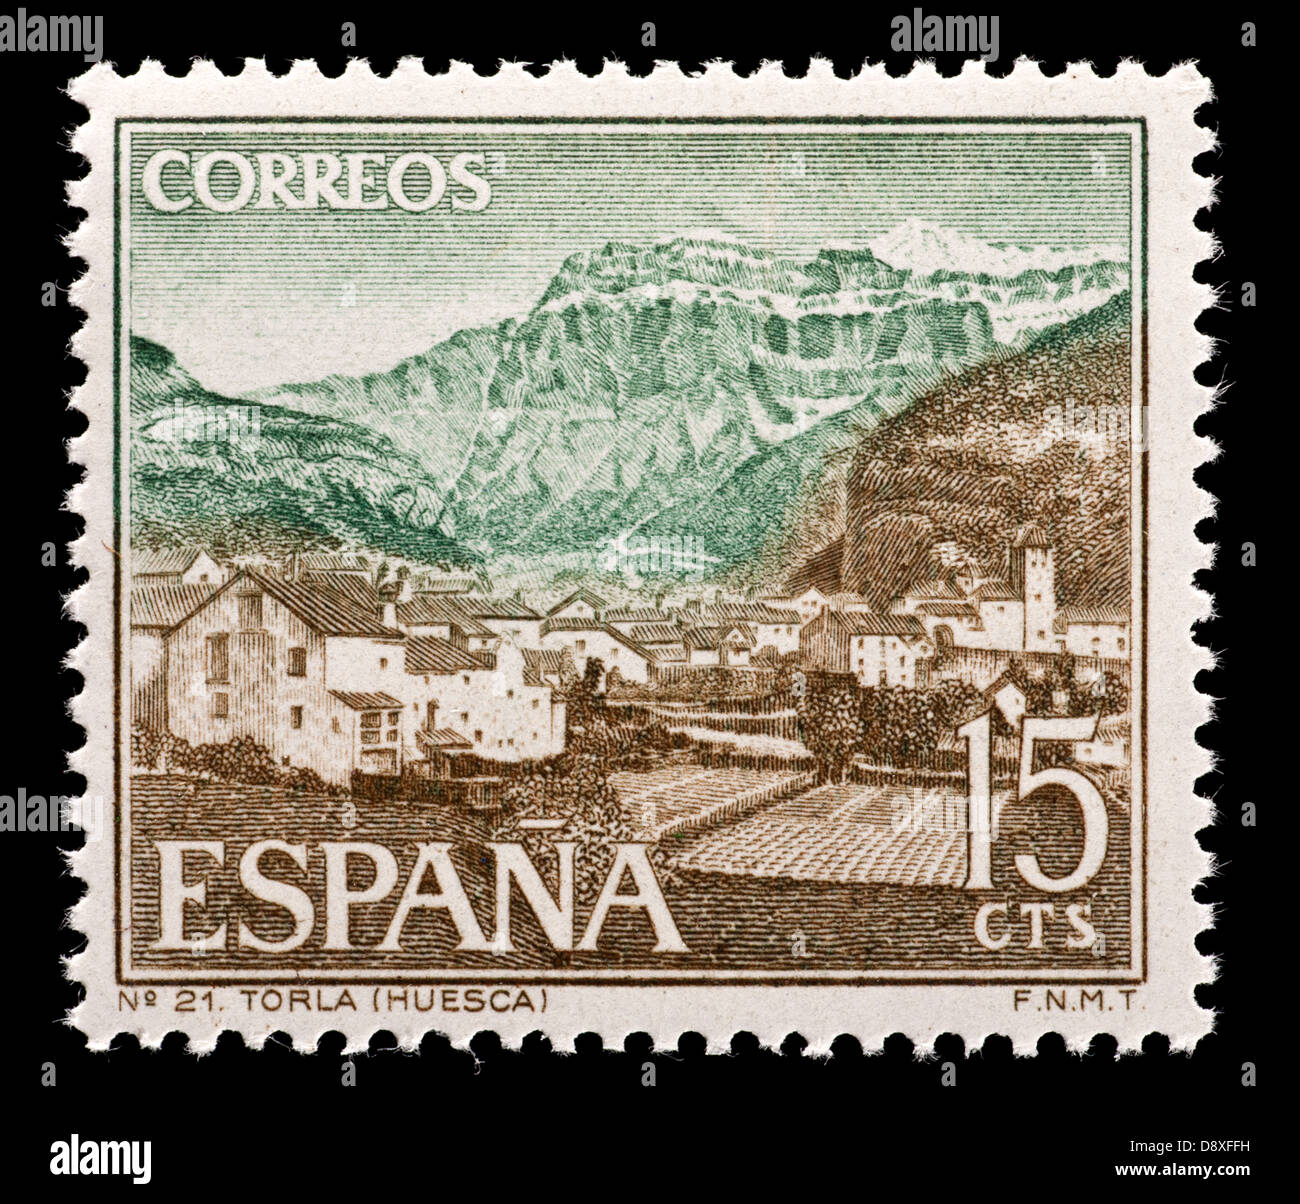 Postage Stamp From Spain Depicting Torla Huesca